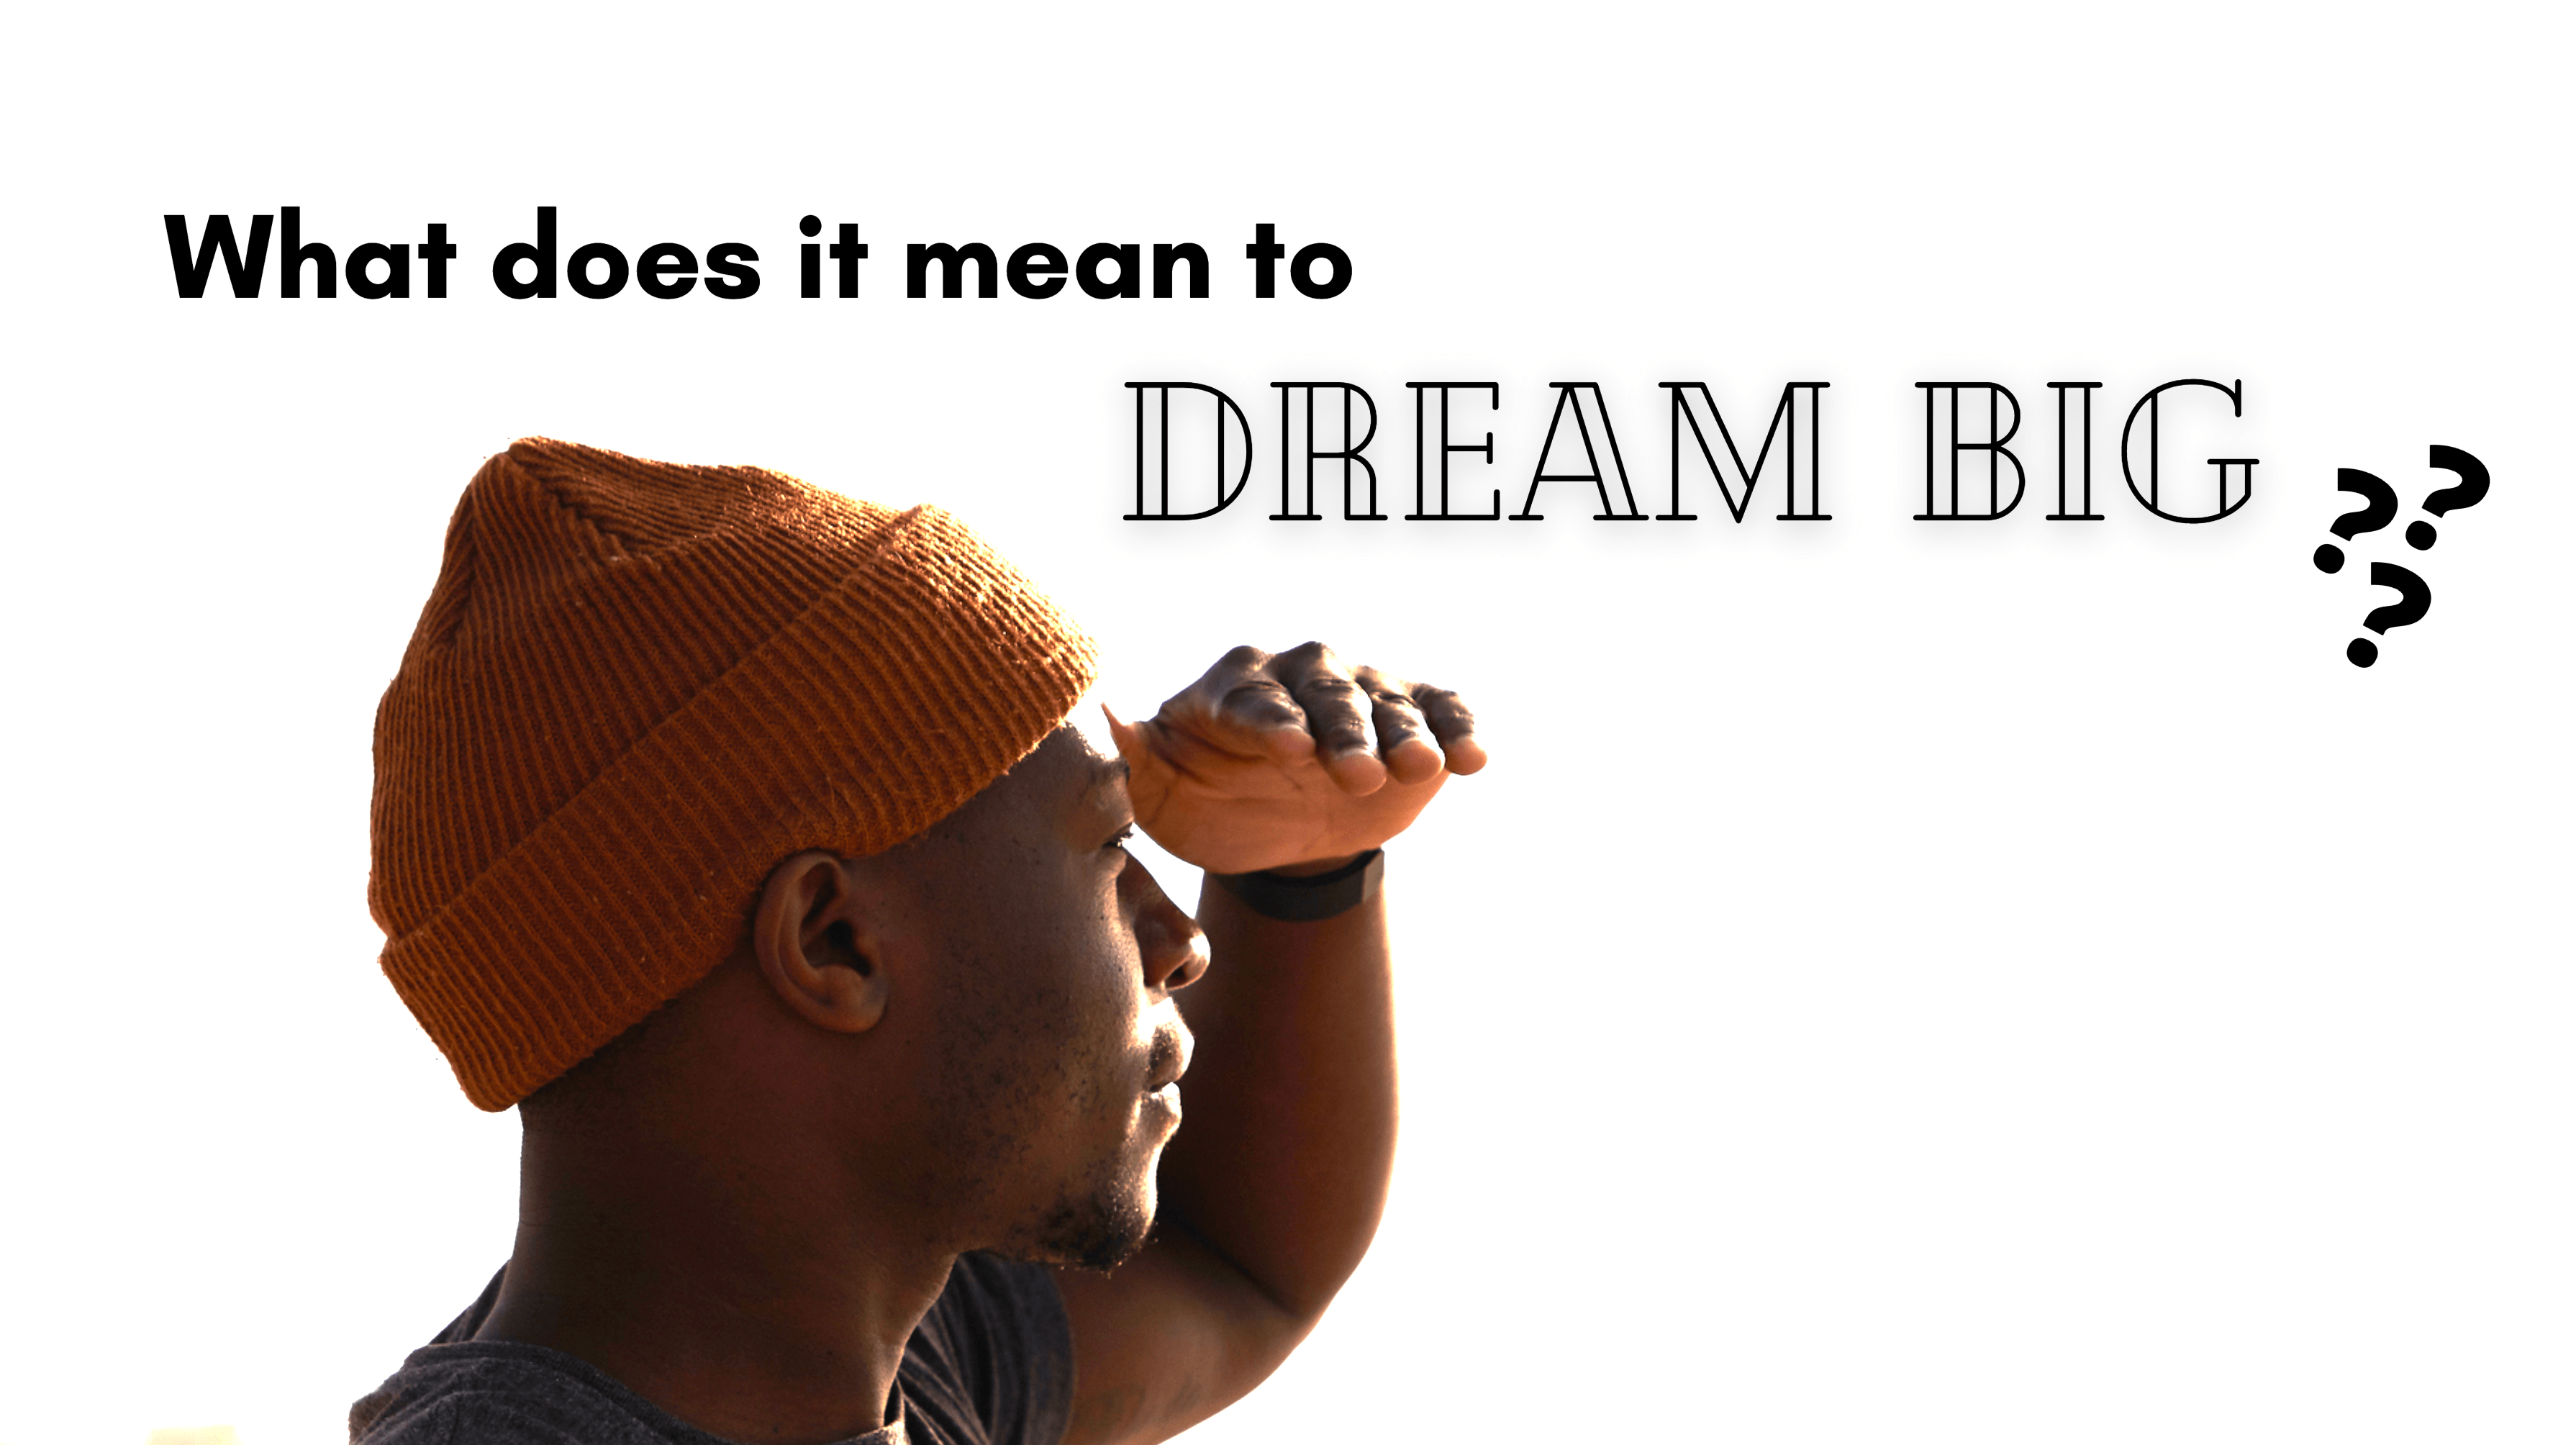 What Does It Mean To Dream Big?